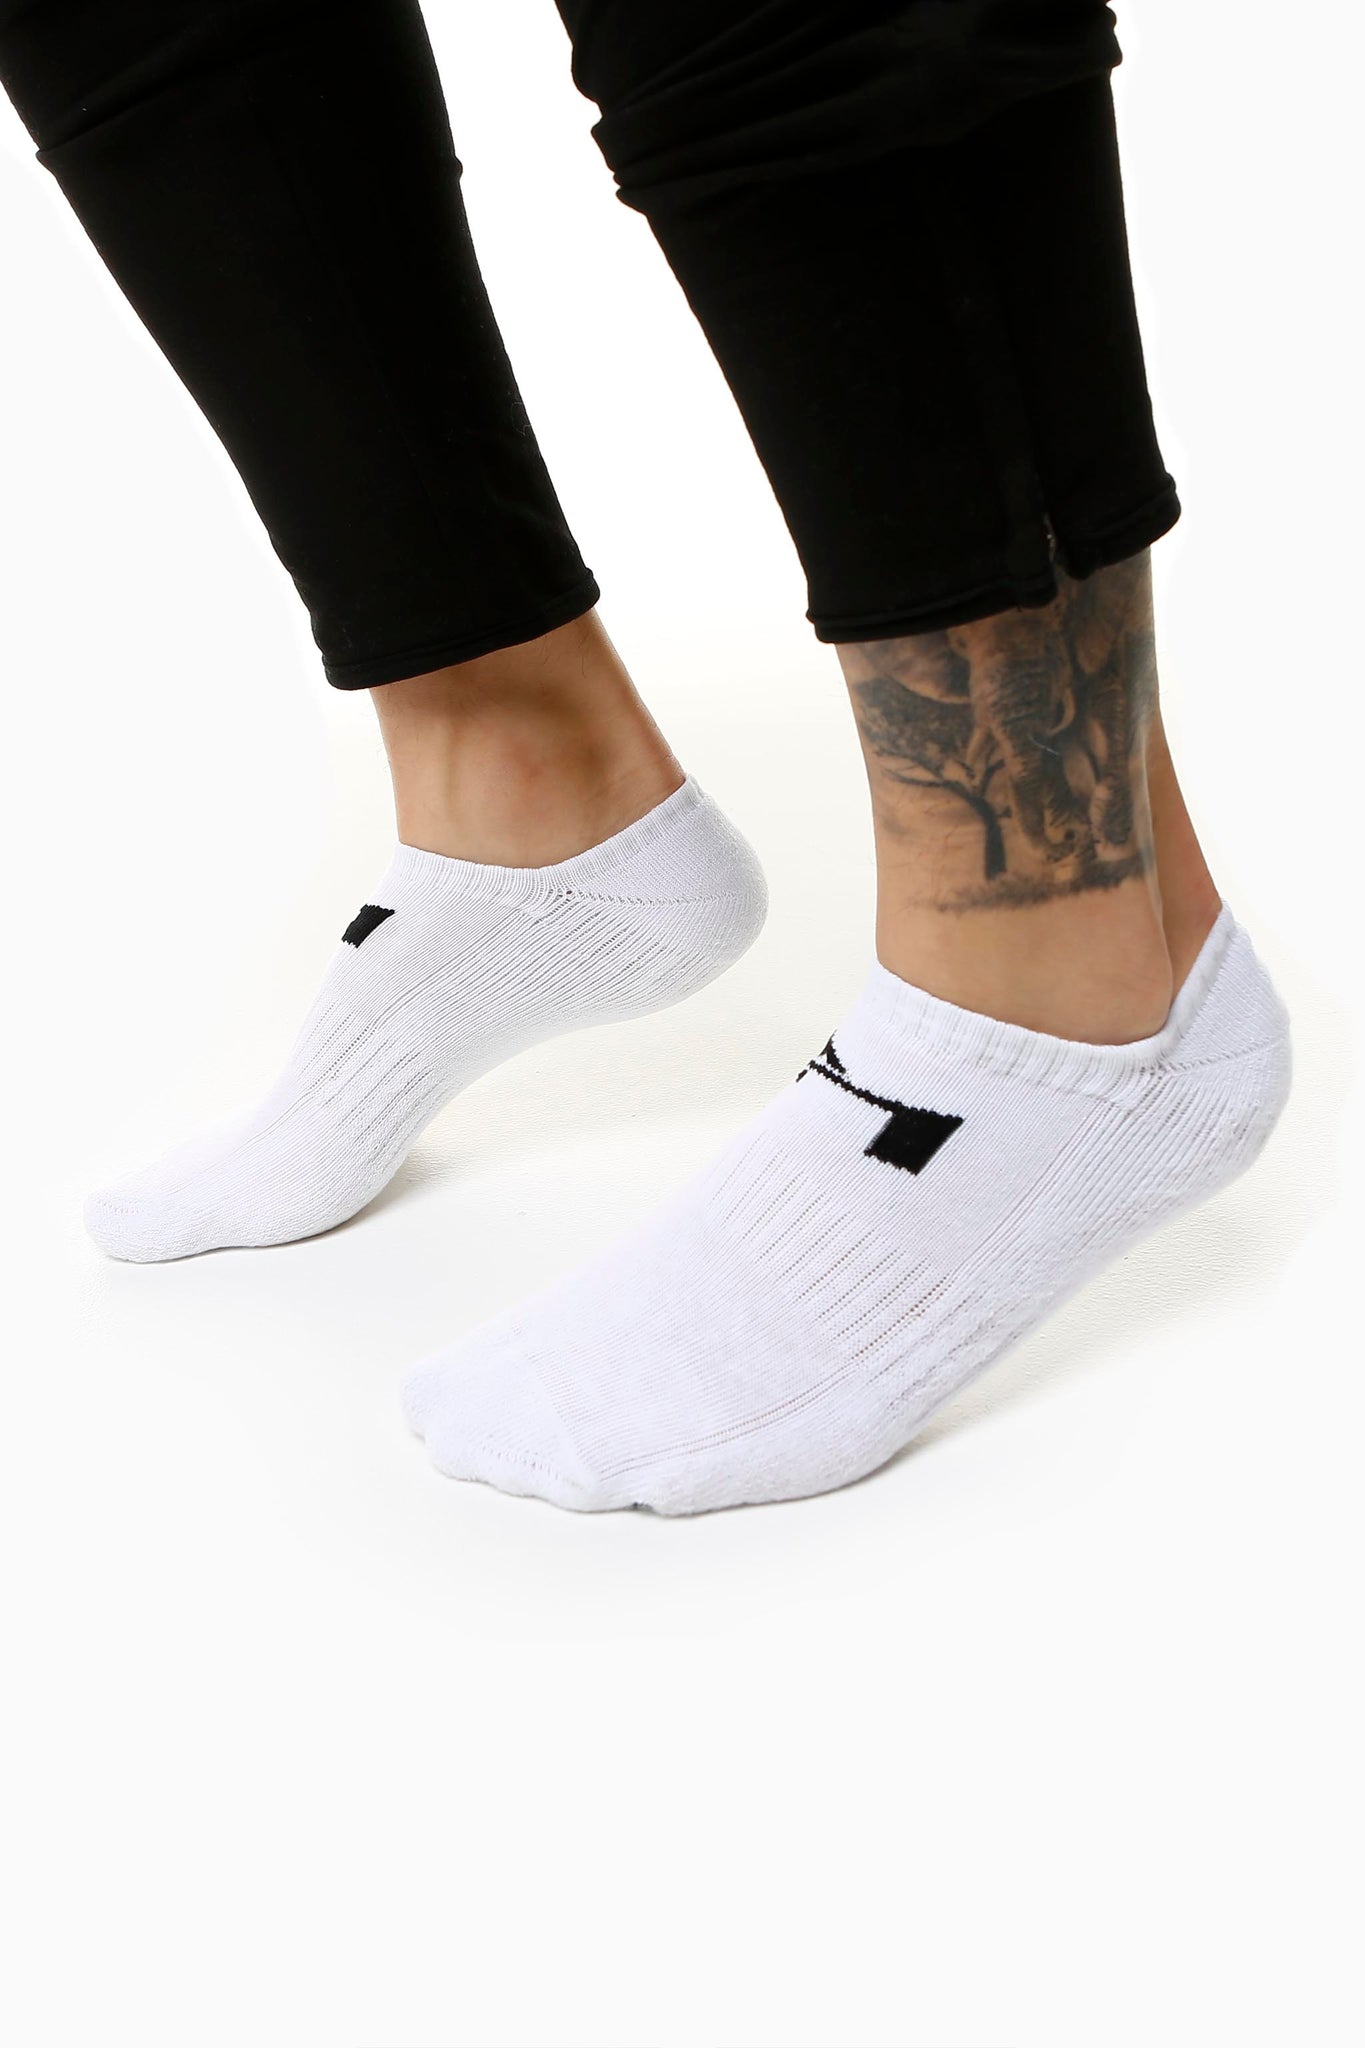 Trainer PRO Performance Socks (1Pk)